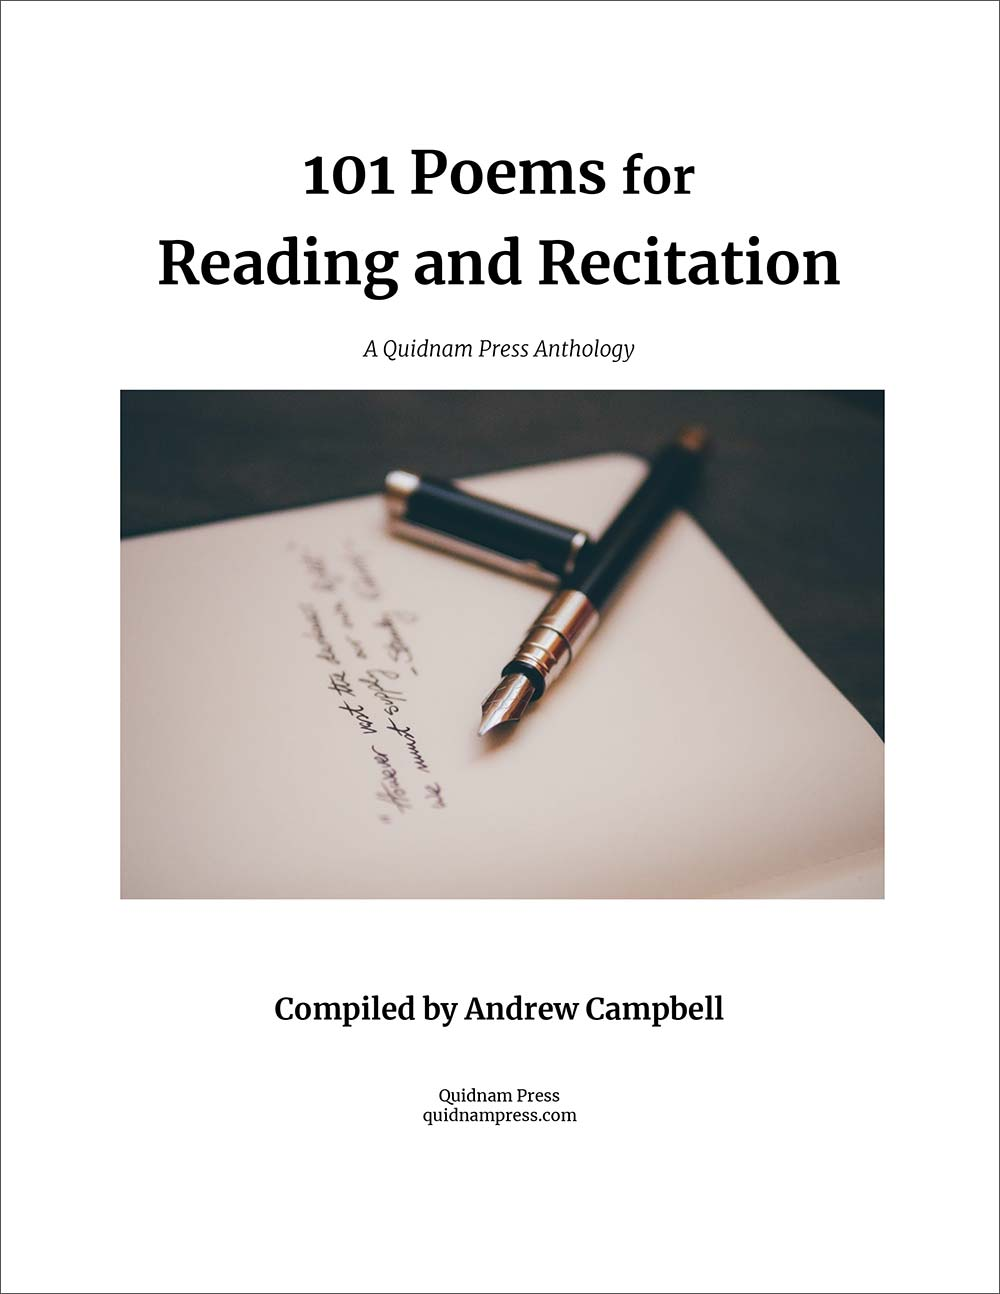 101 Poems for Reading and Recitation